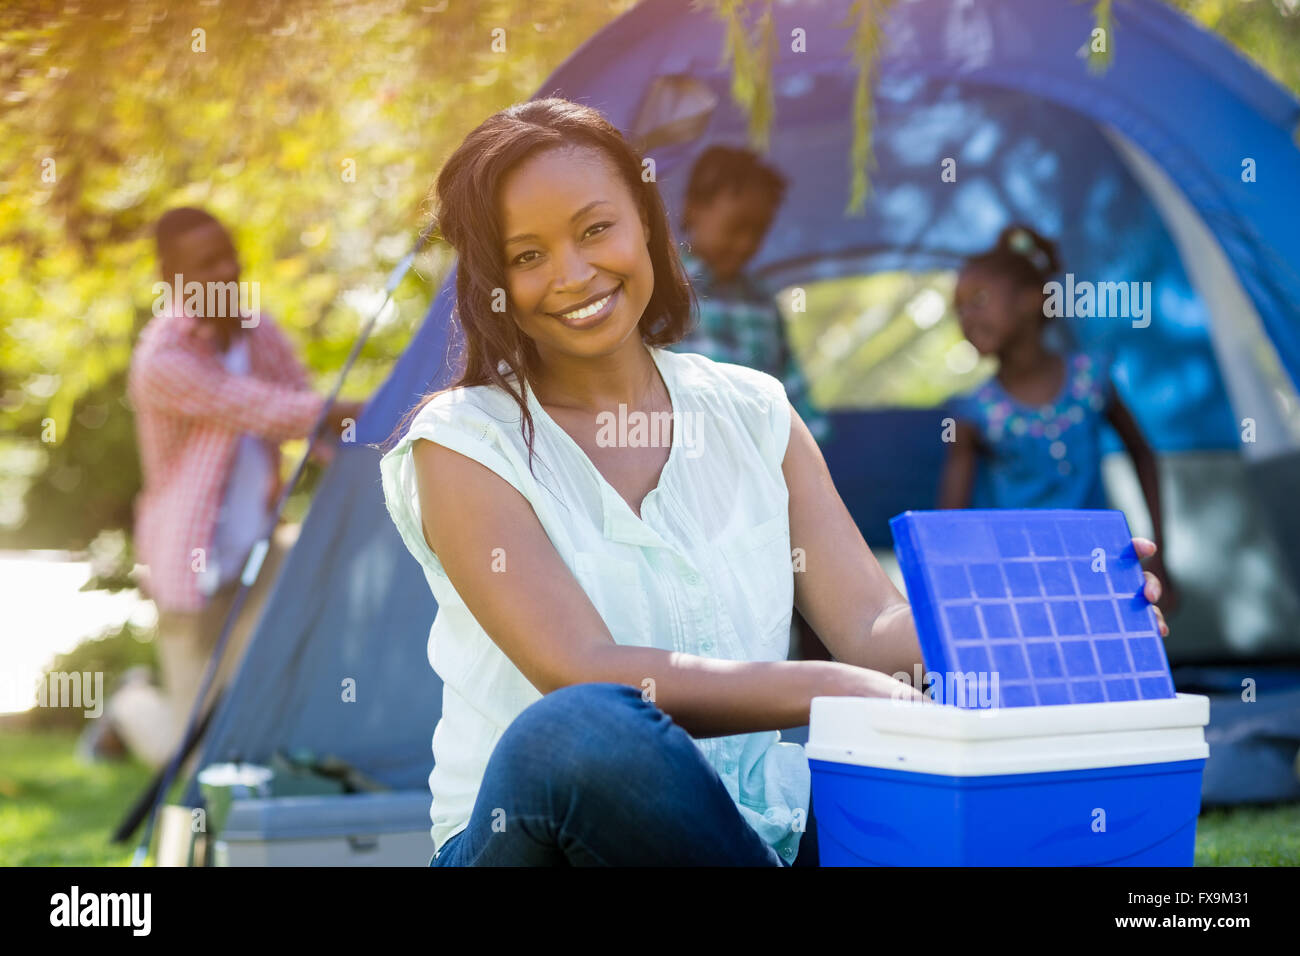 Happy woman posing and using a cooler - Stock Image